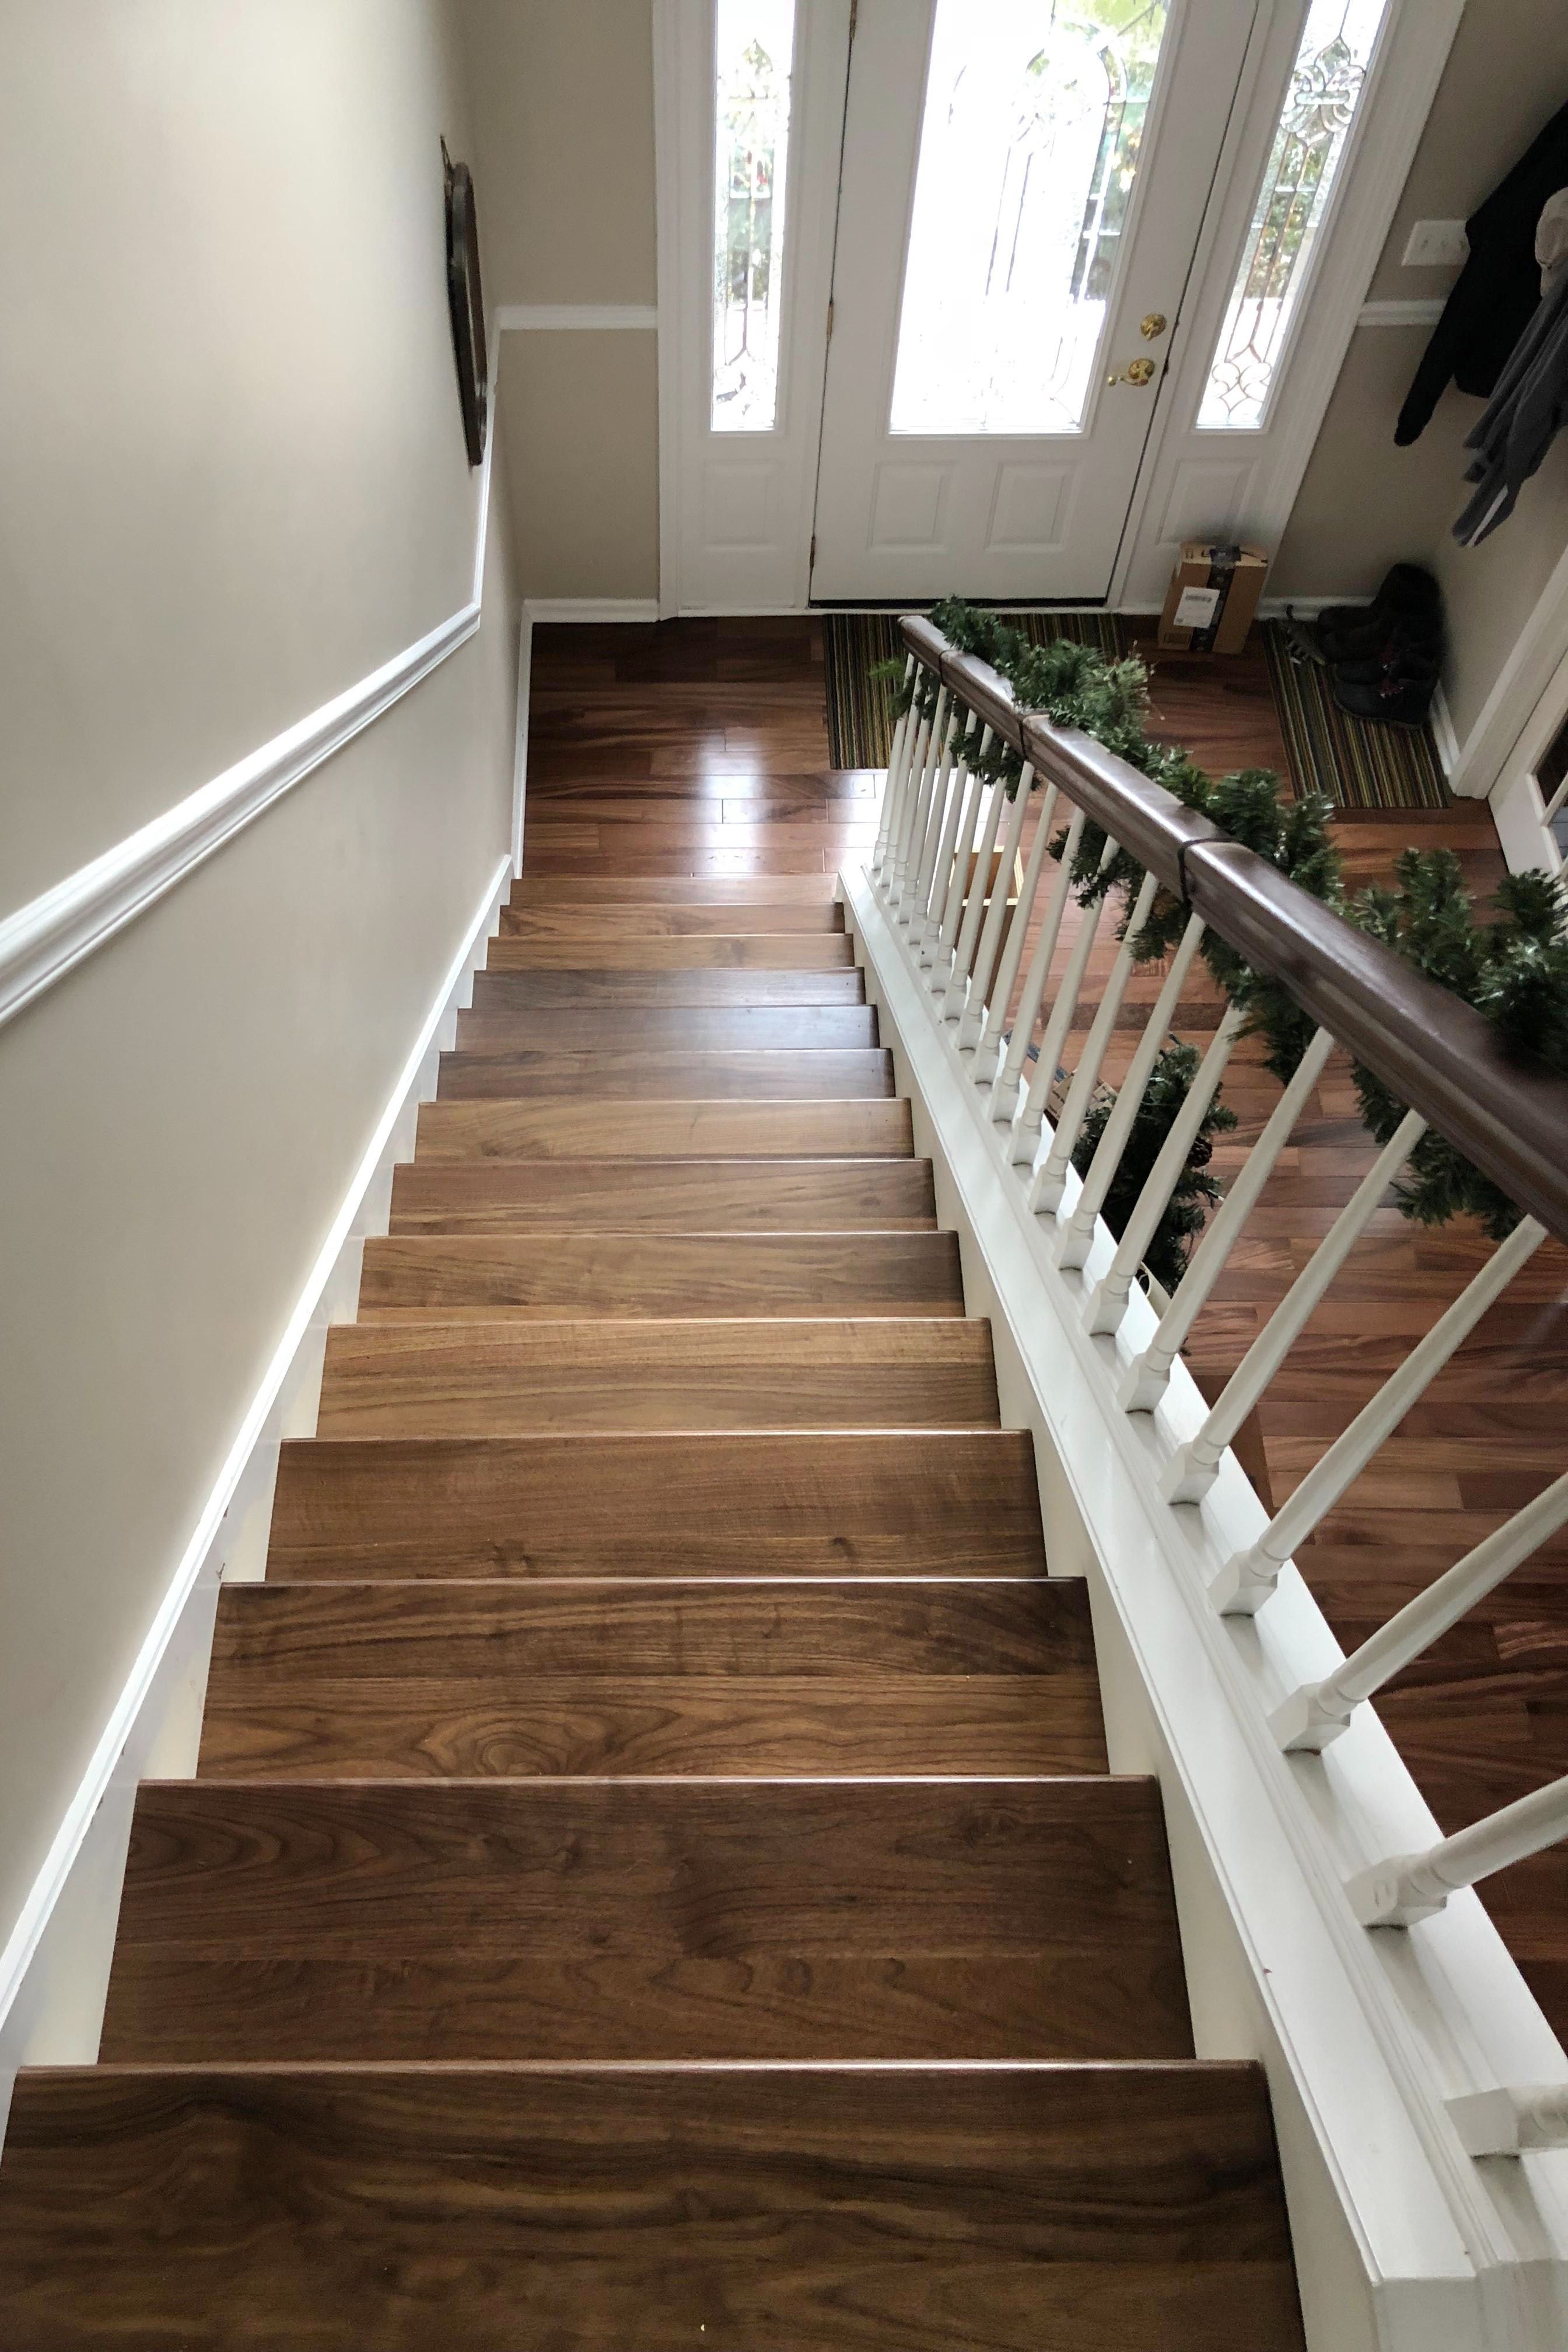 Best Clear Walnut Stair Tread In 2020 With Images Stair 400 x 300